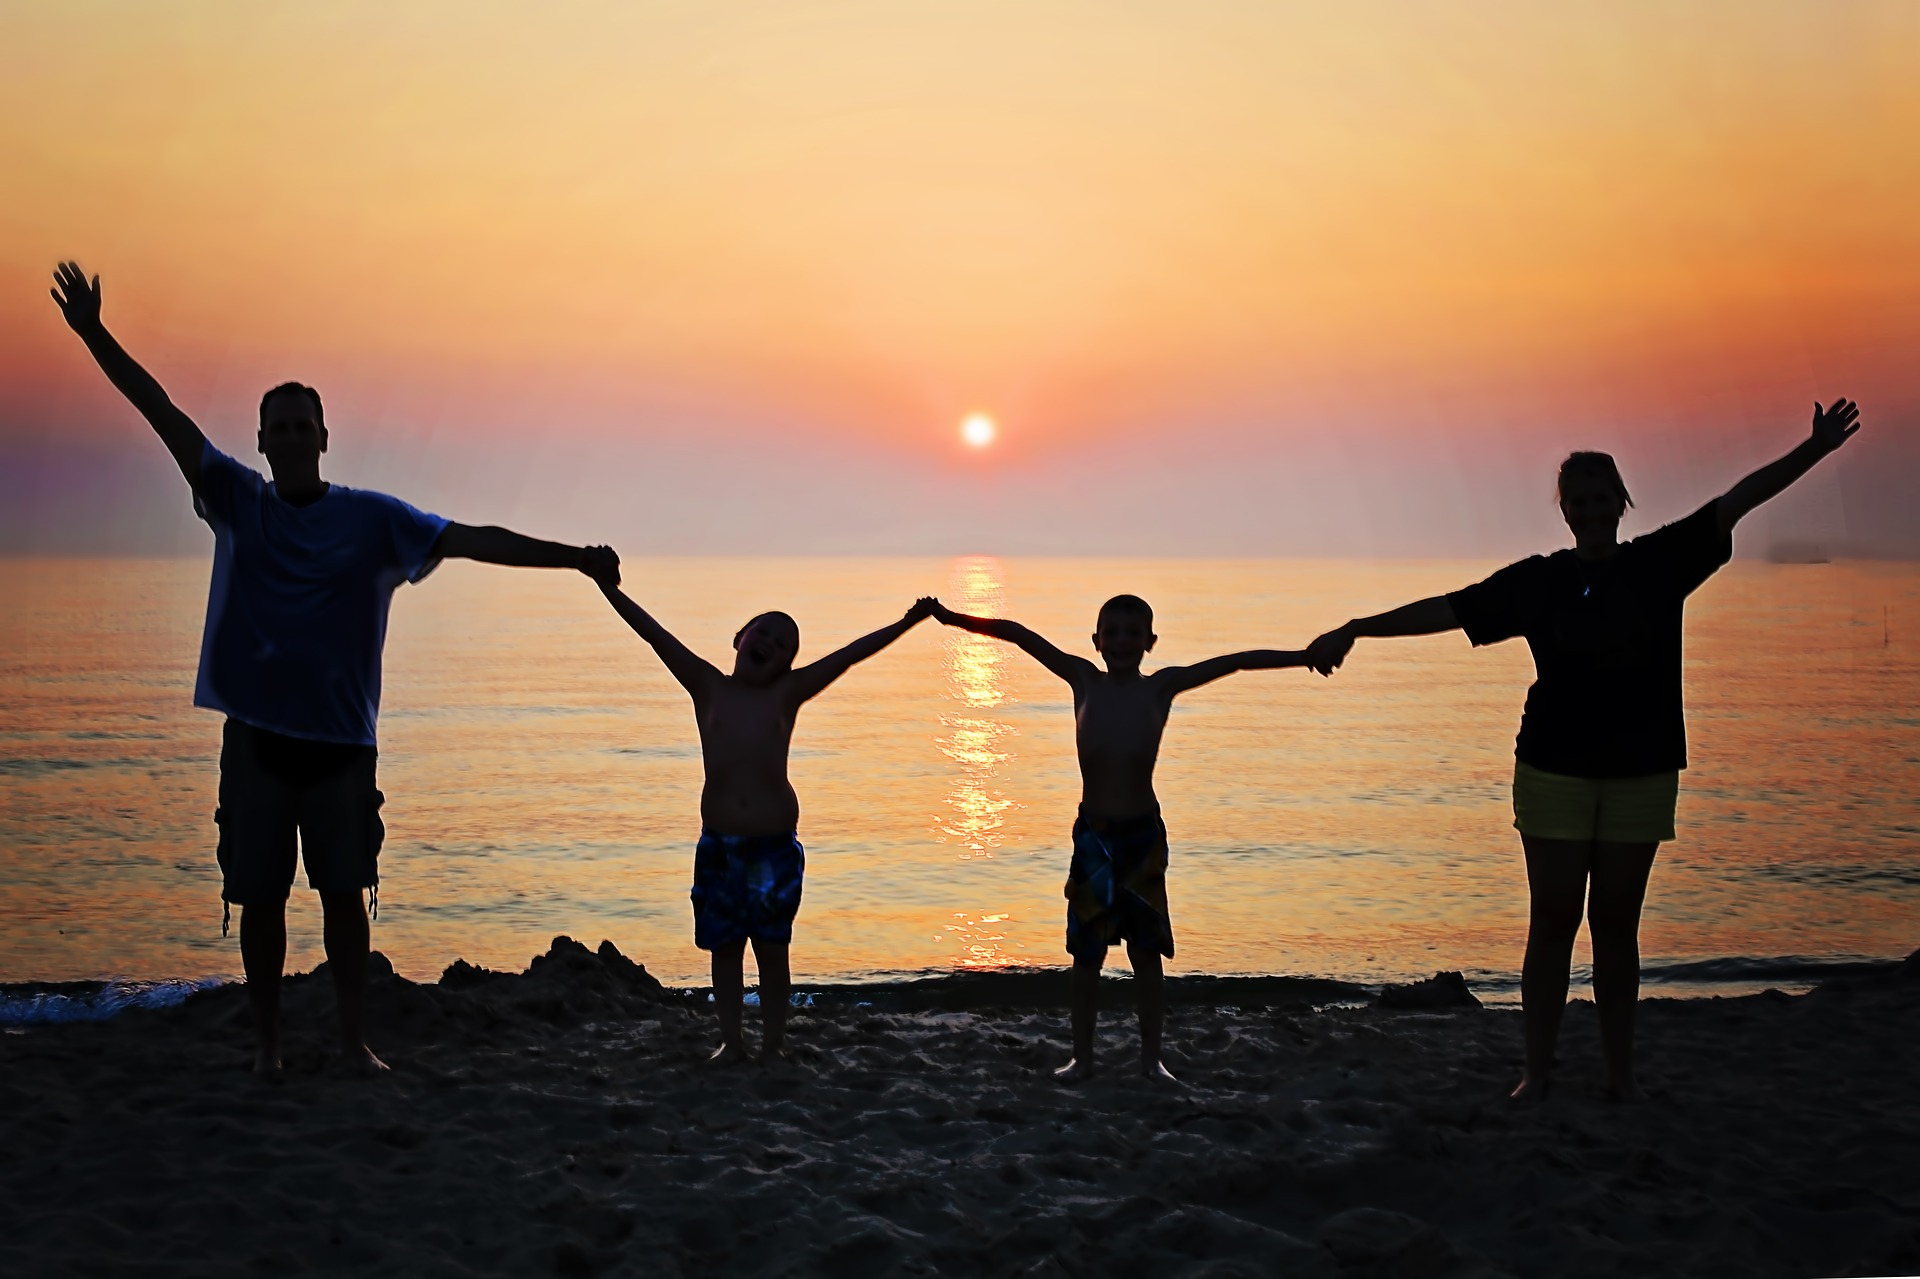 Family with arms raised, holding hands in front of ocean at sunset